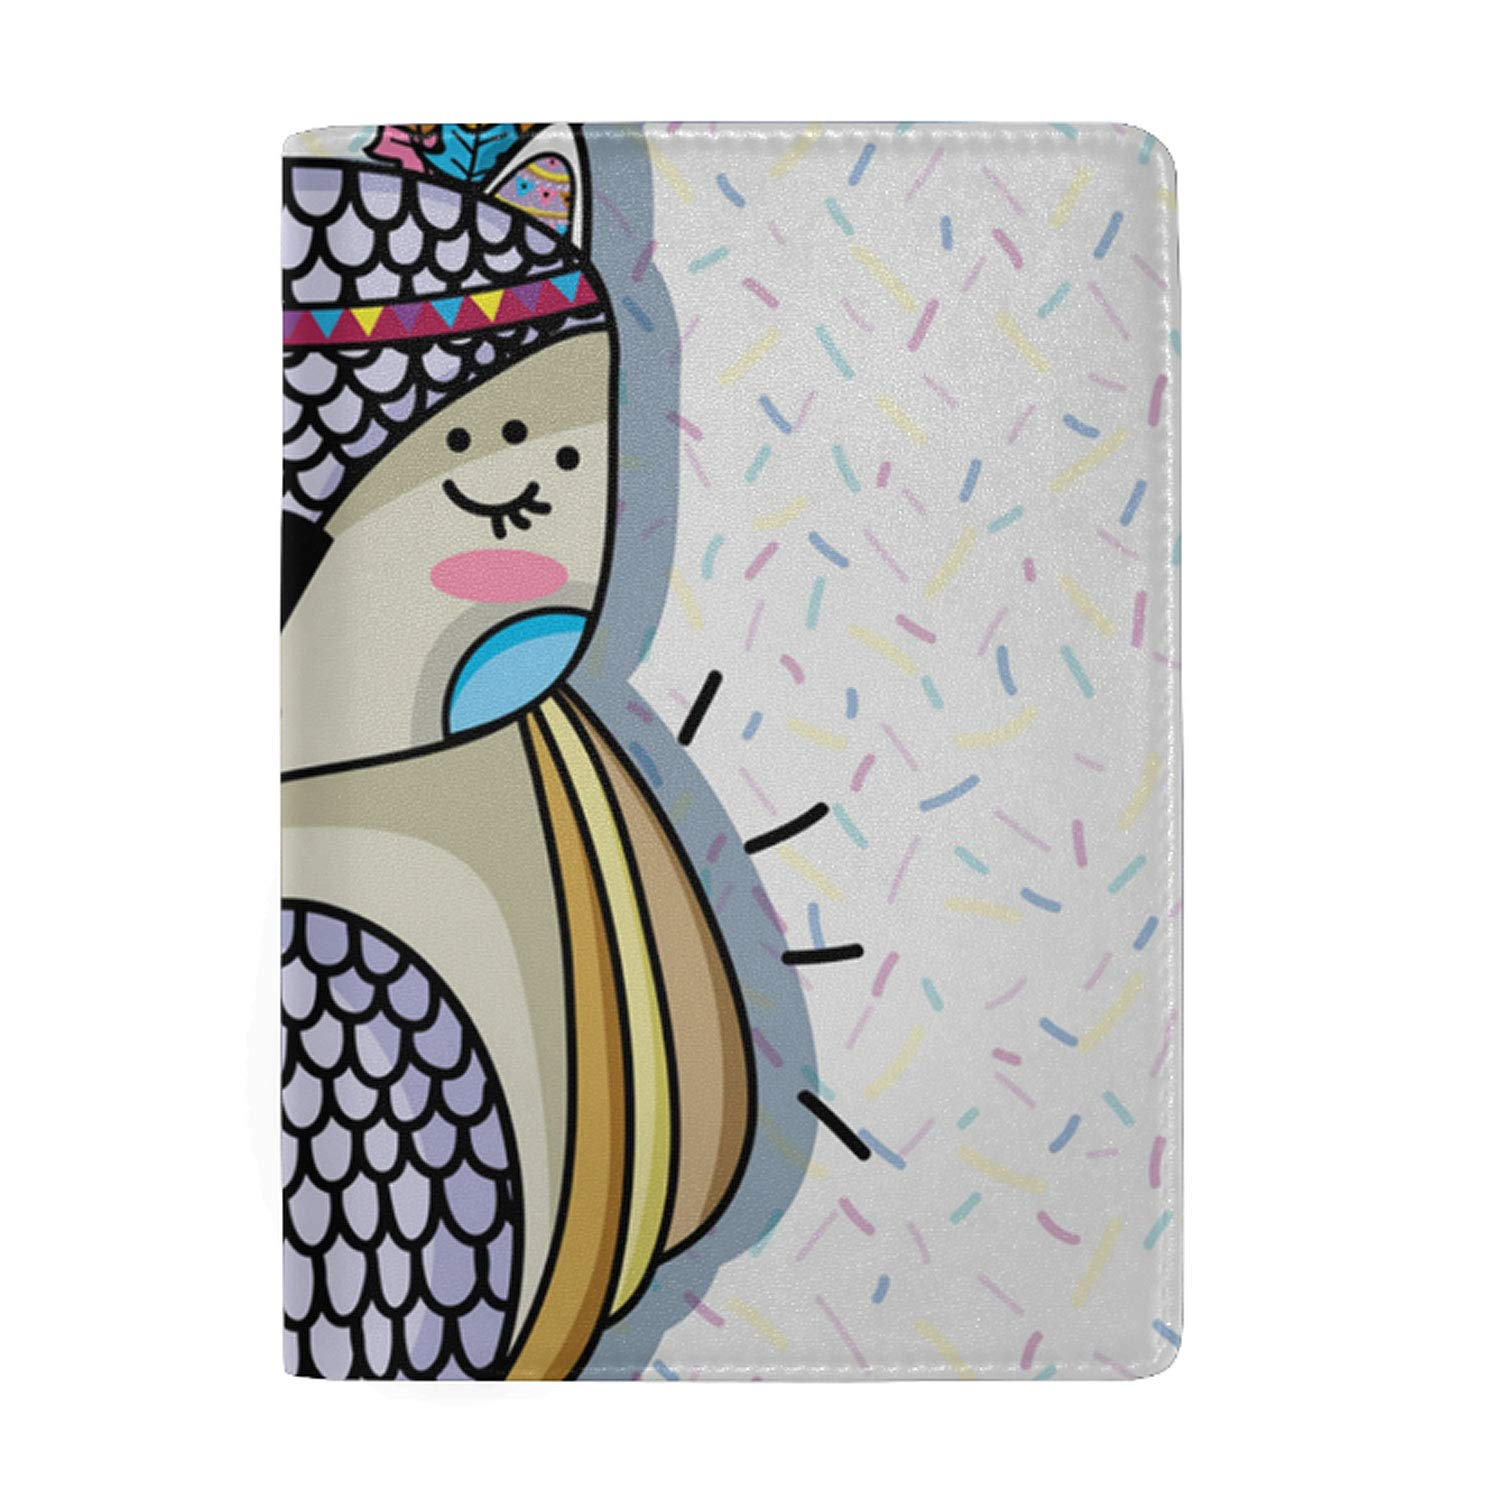 RFID Blocking Genuine Leather Passport Case Cover Holder Travel Wallet Cute Forest Animals